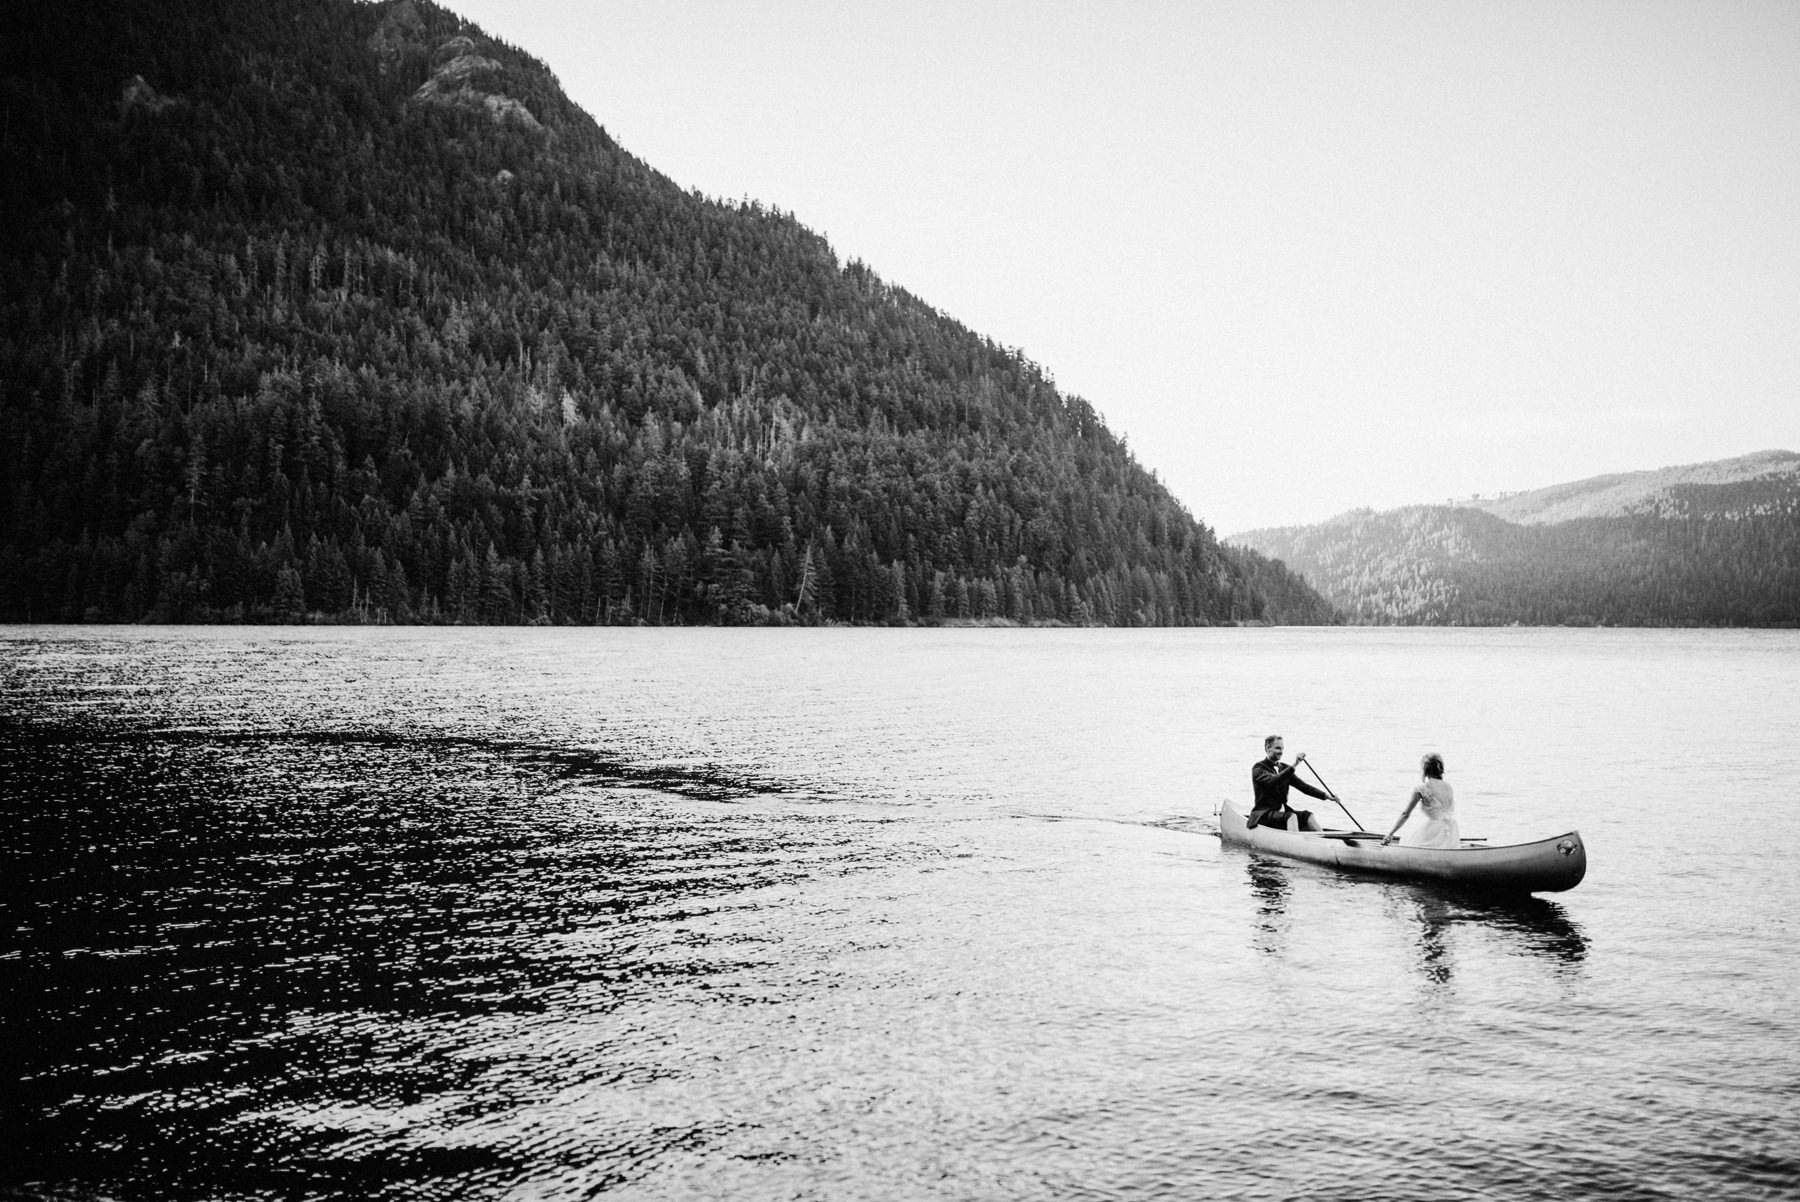 189-bride-and-groom-in-a-canoe-across-lake-crescent-by-nature-bridge.jpg